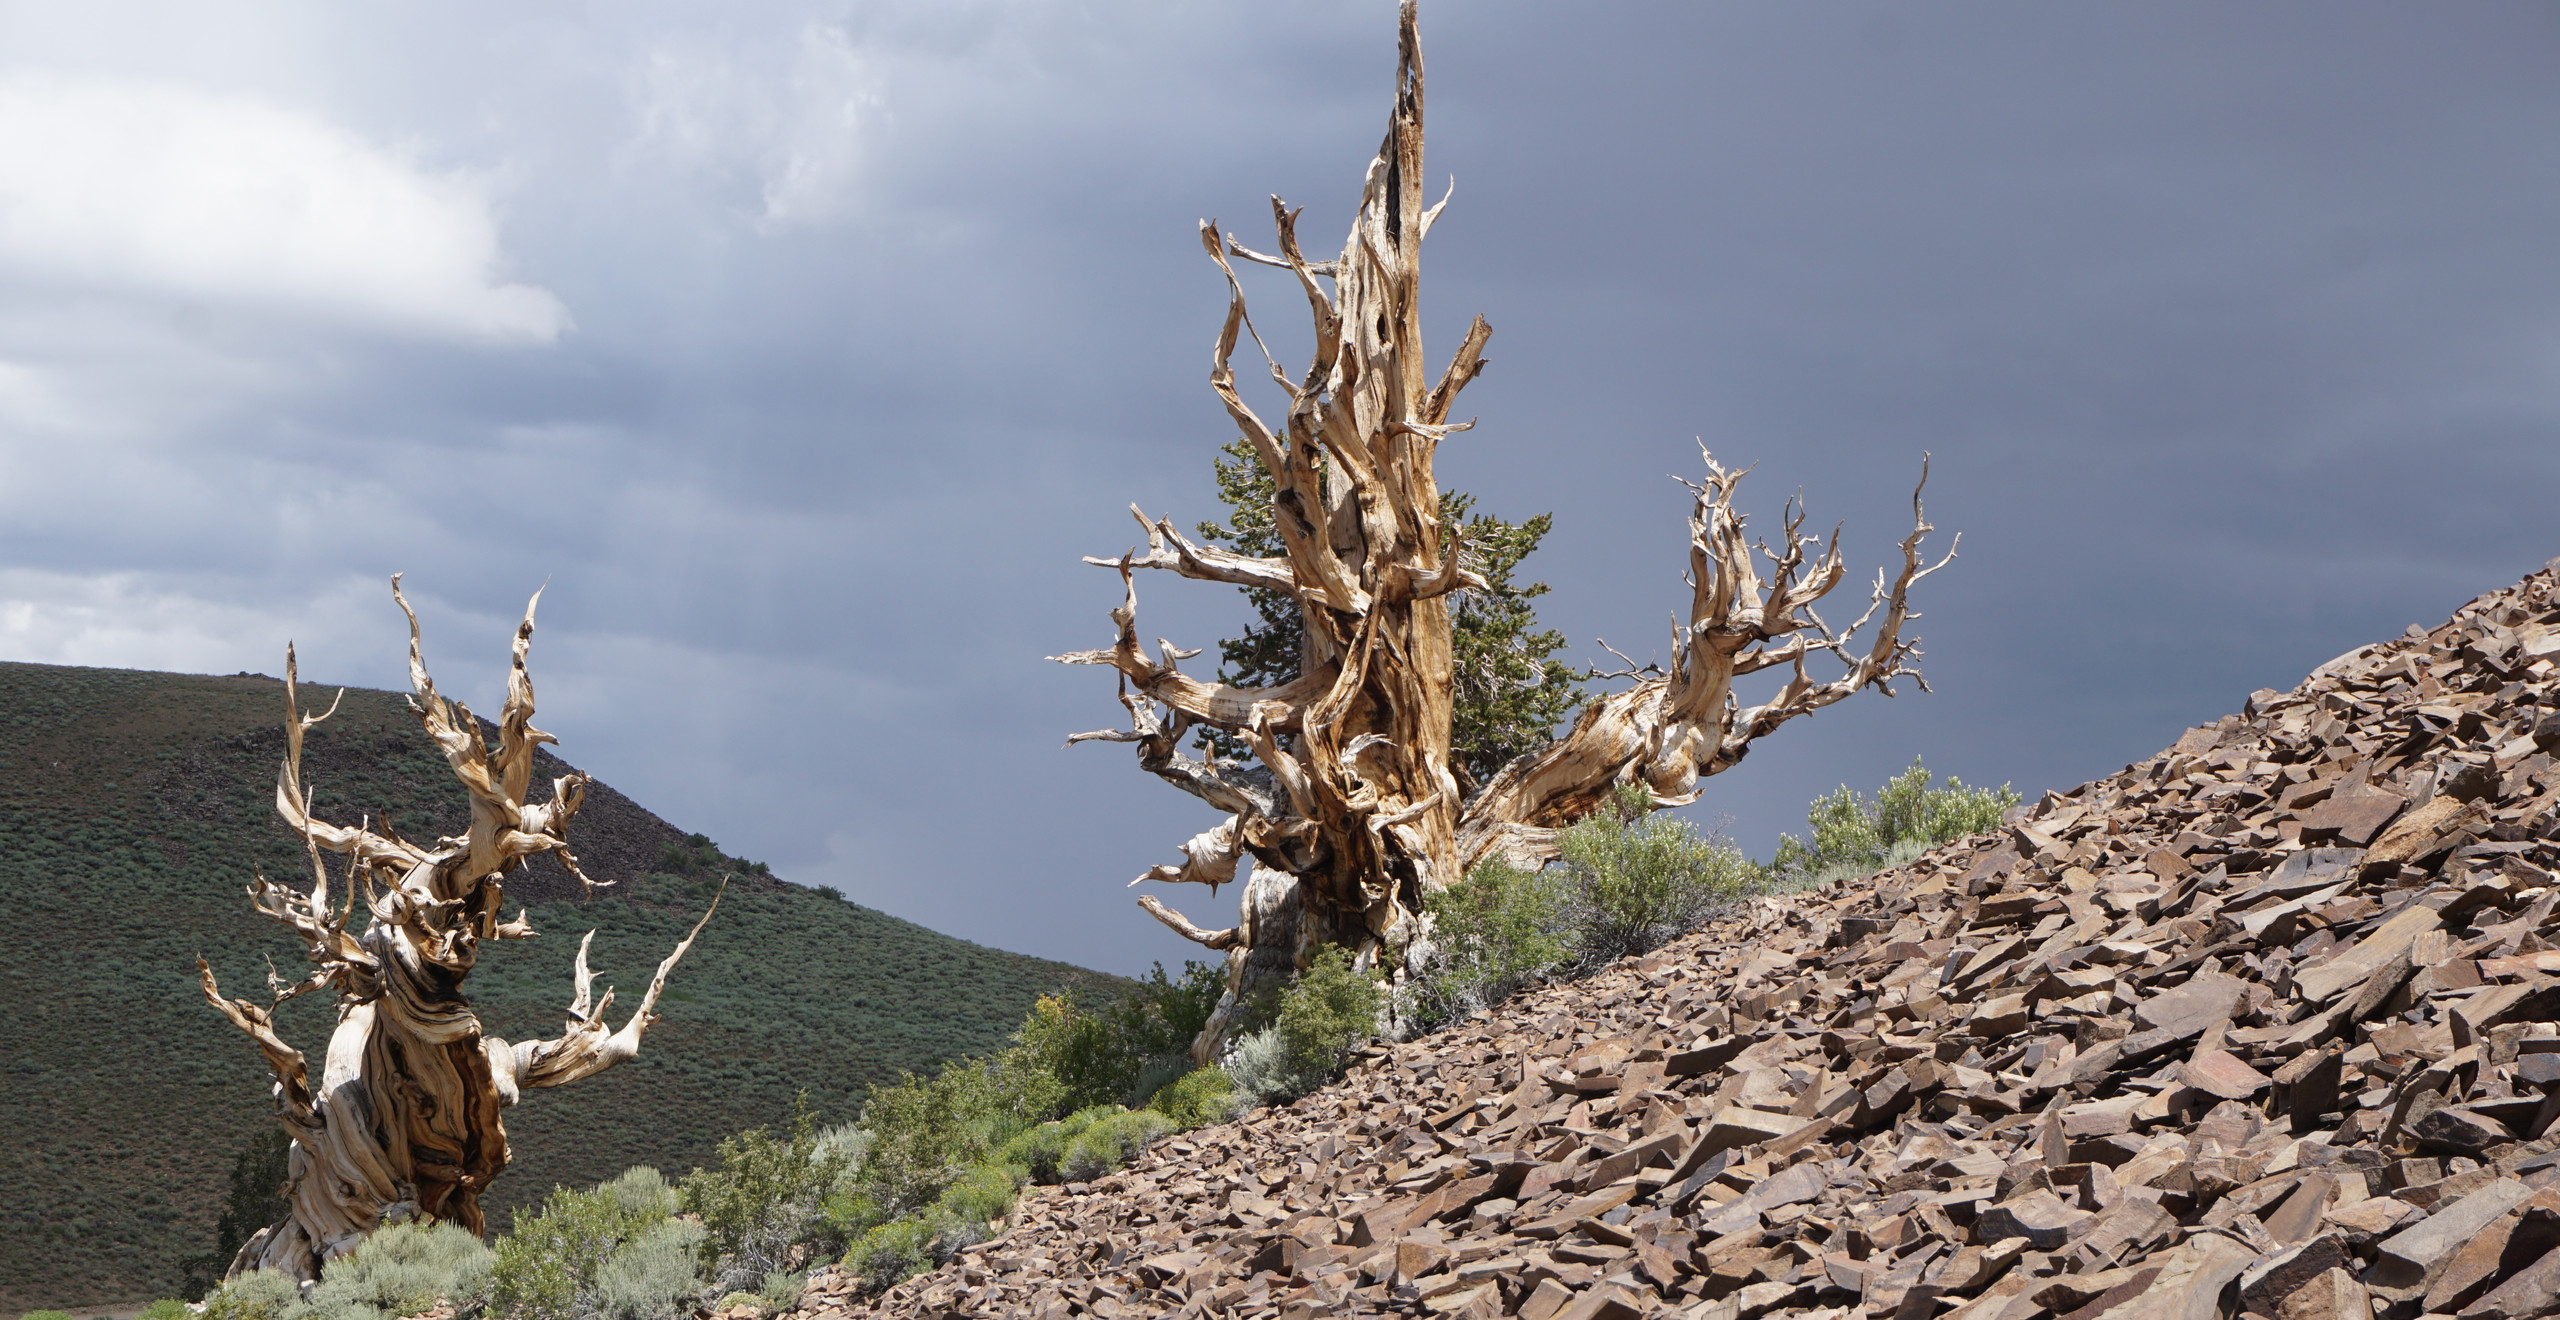 Bristlecone pines with pika habitat, White Mountains, CA